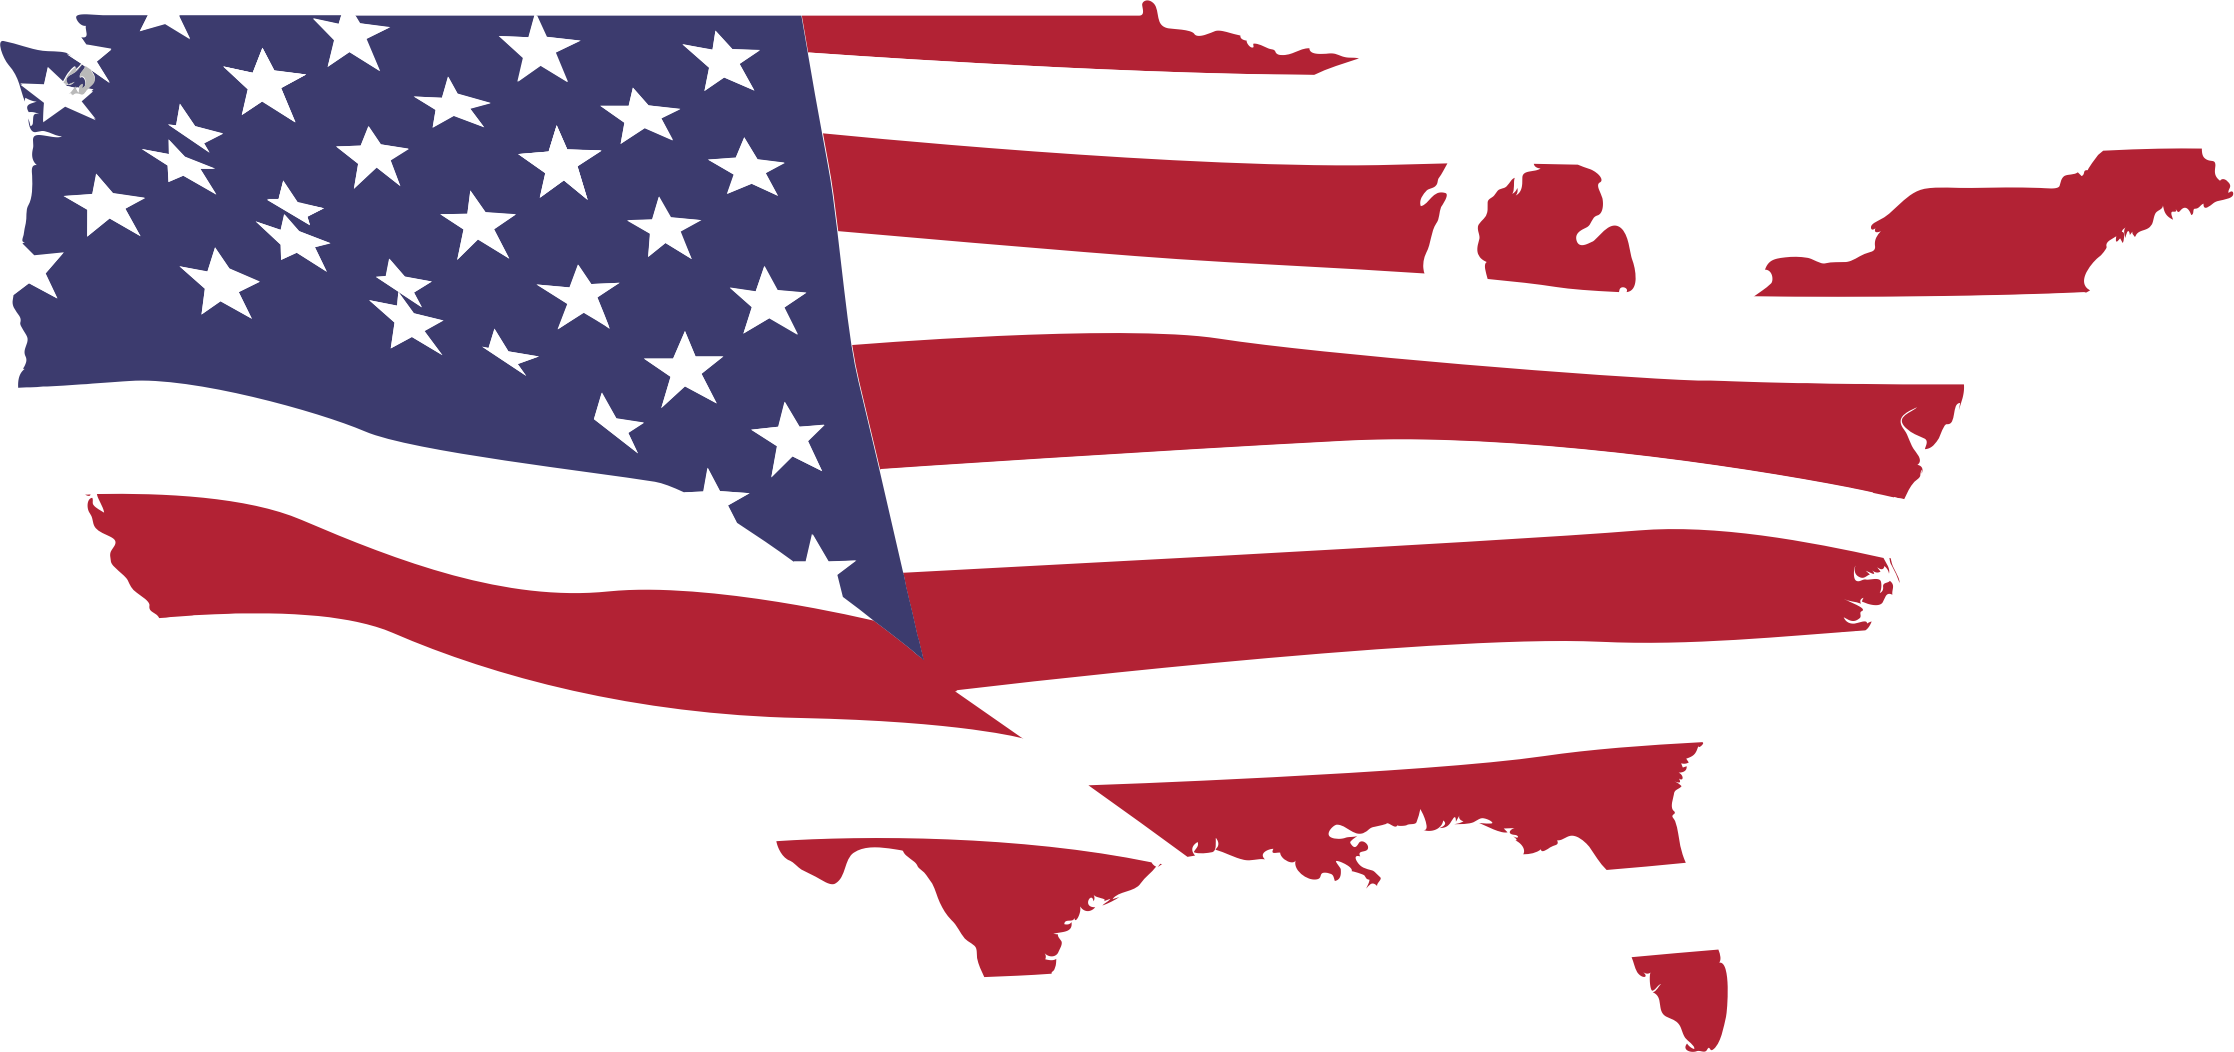 Clipart USA Map Flag Without Alaska Puerto Rico And Hawaii - Usa map with alaska and hawaii